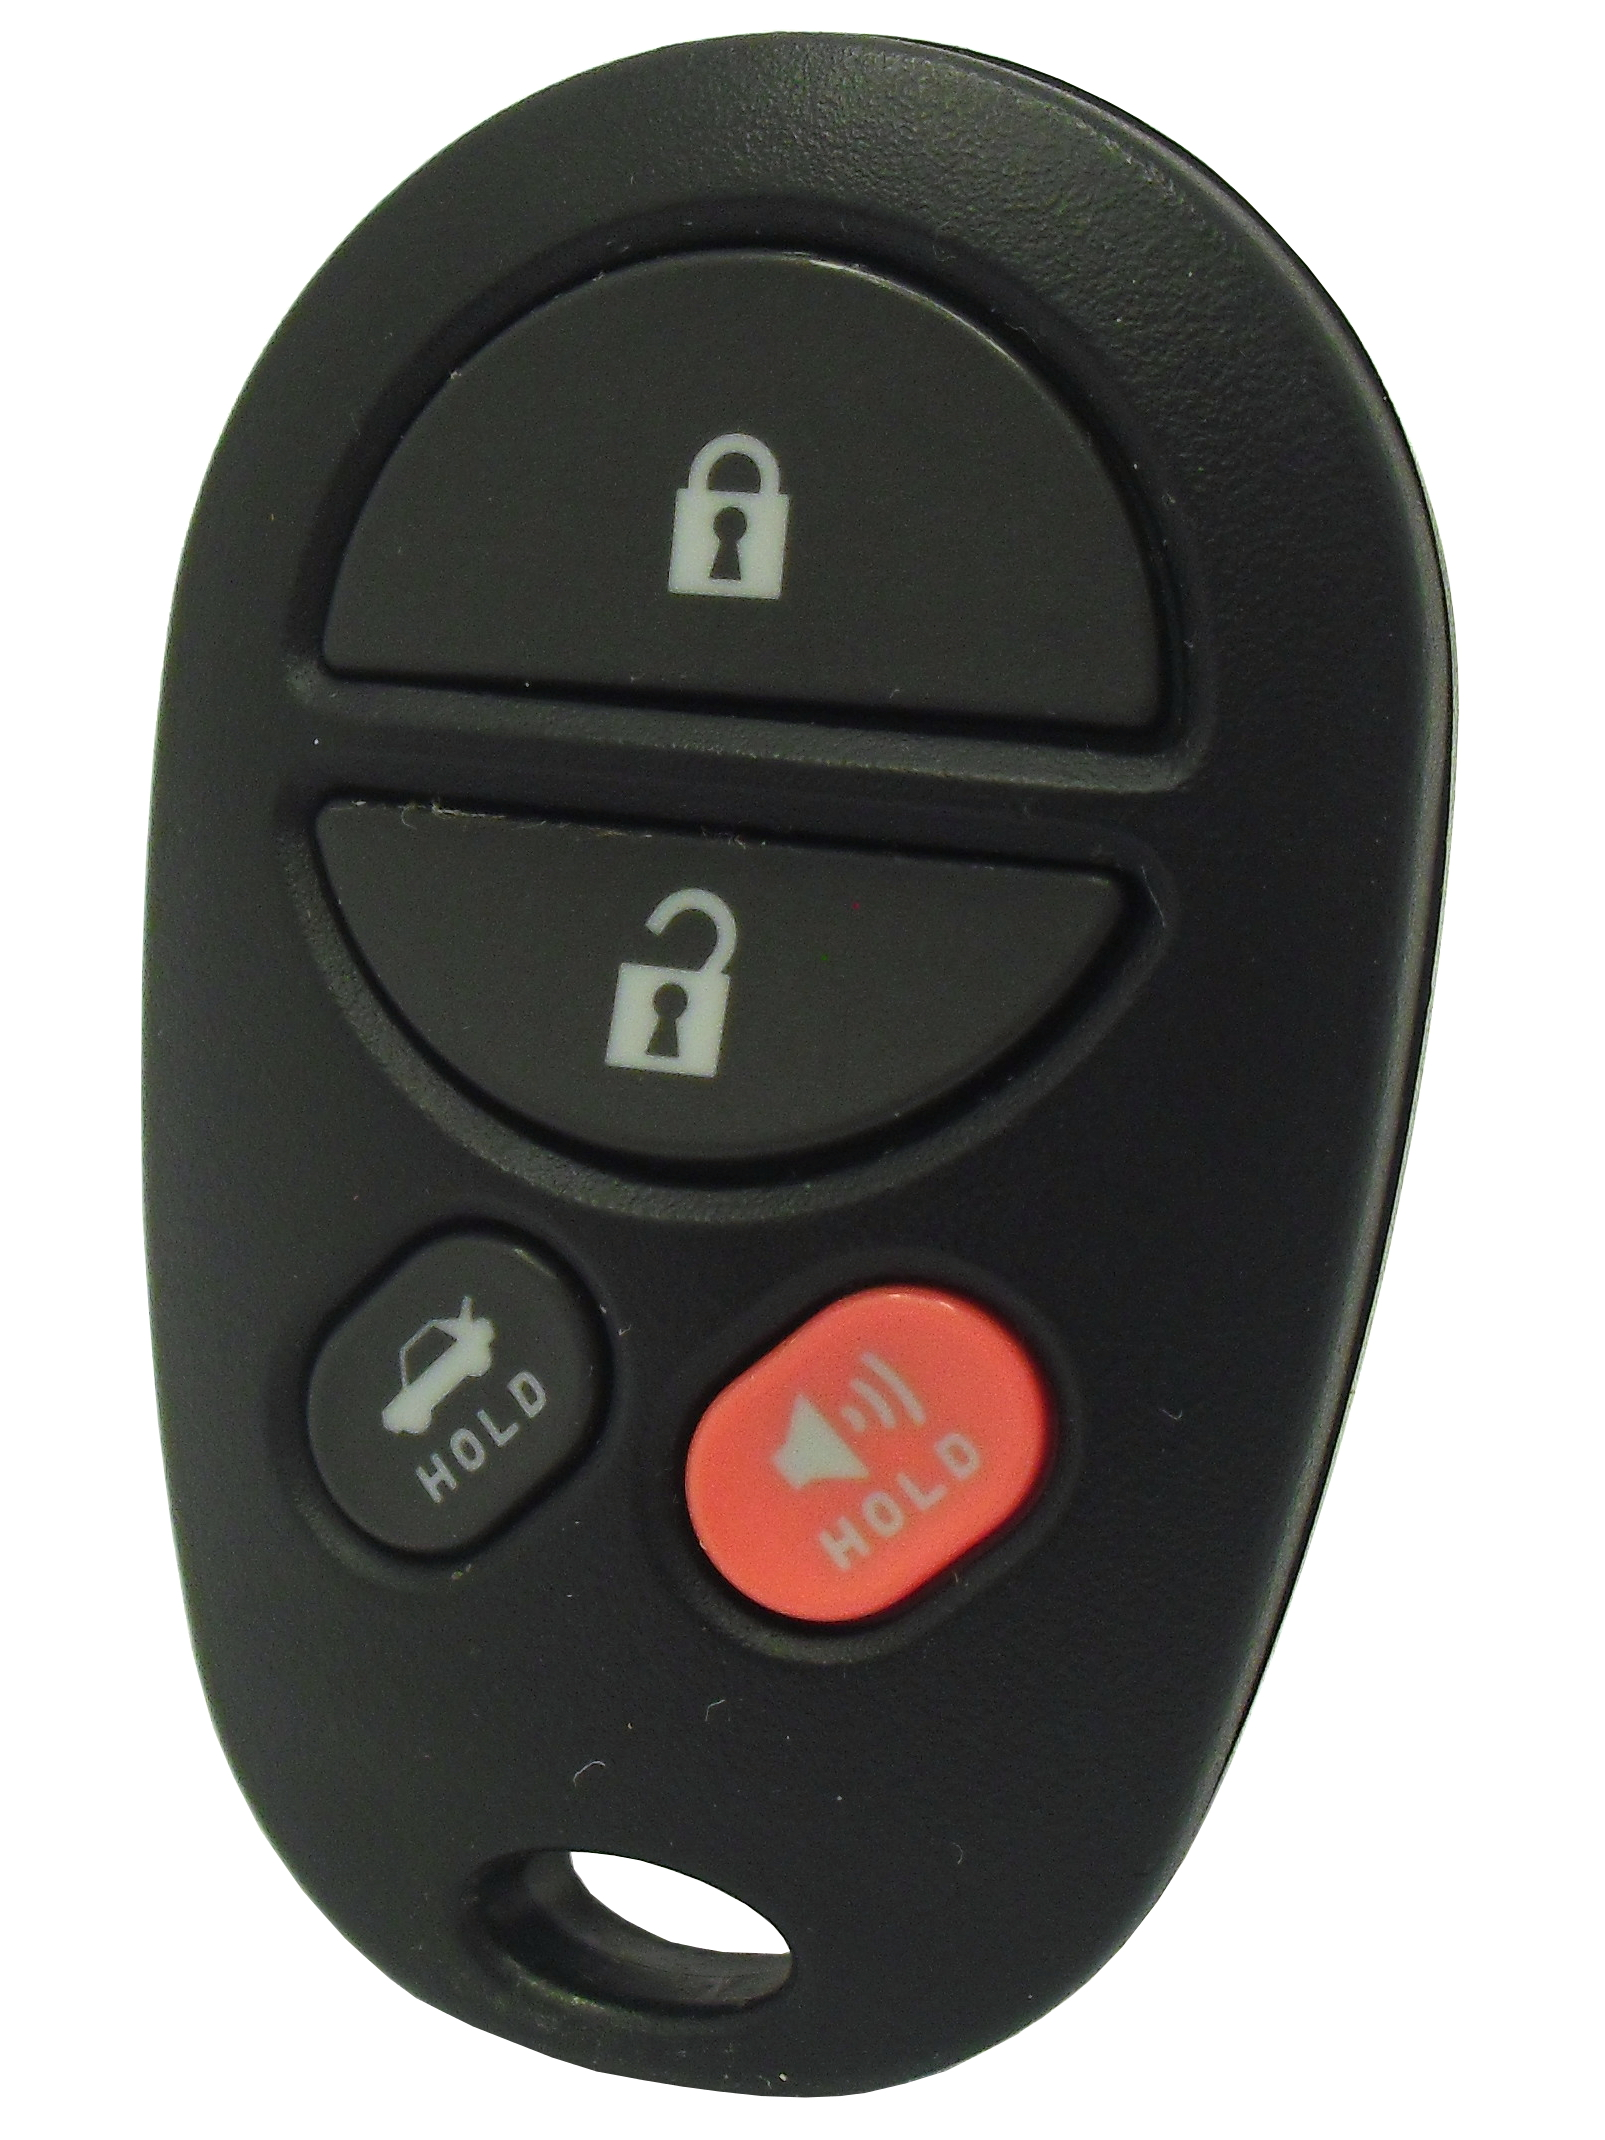 Keyless Entry Remote - 4 Button